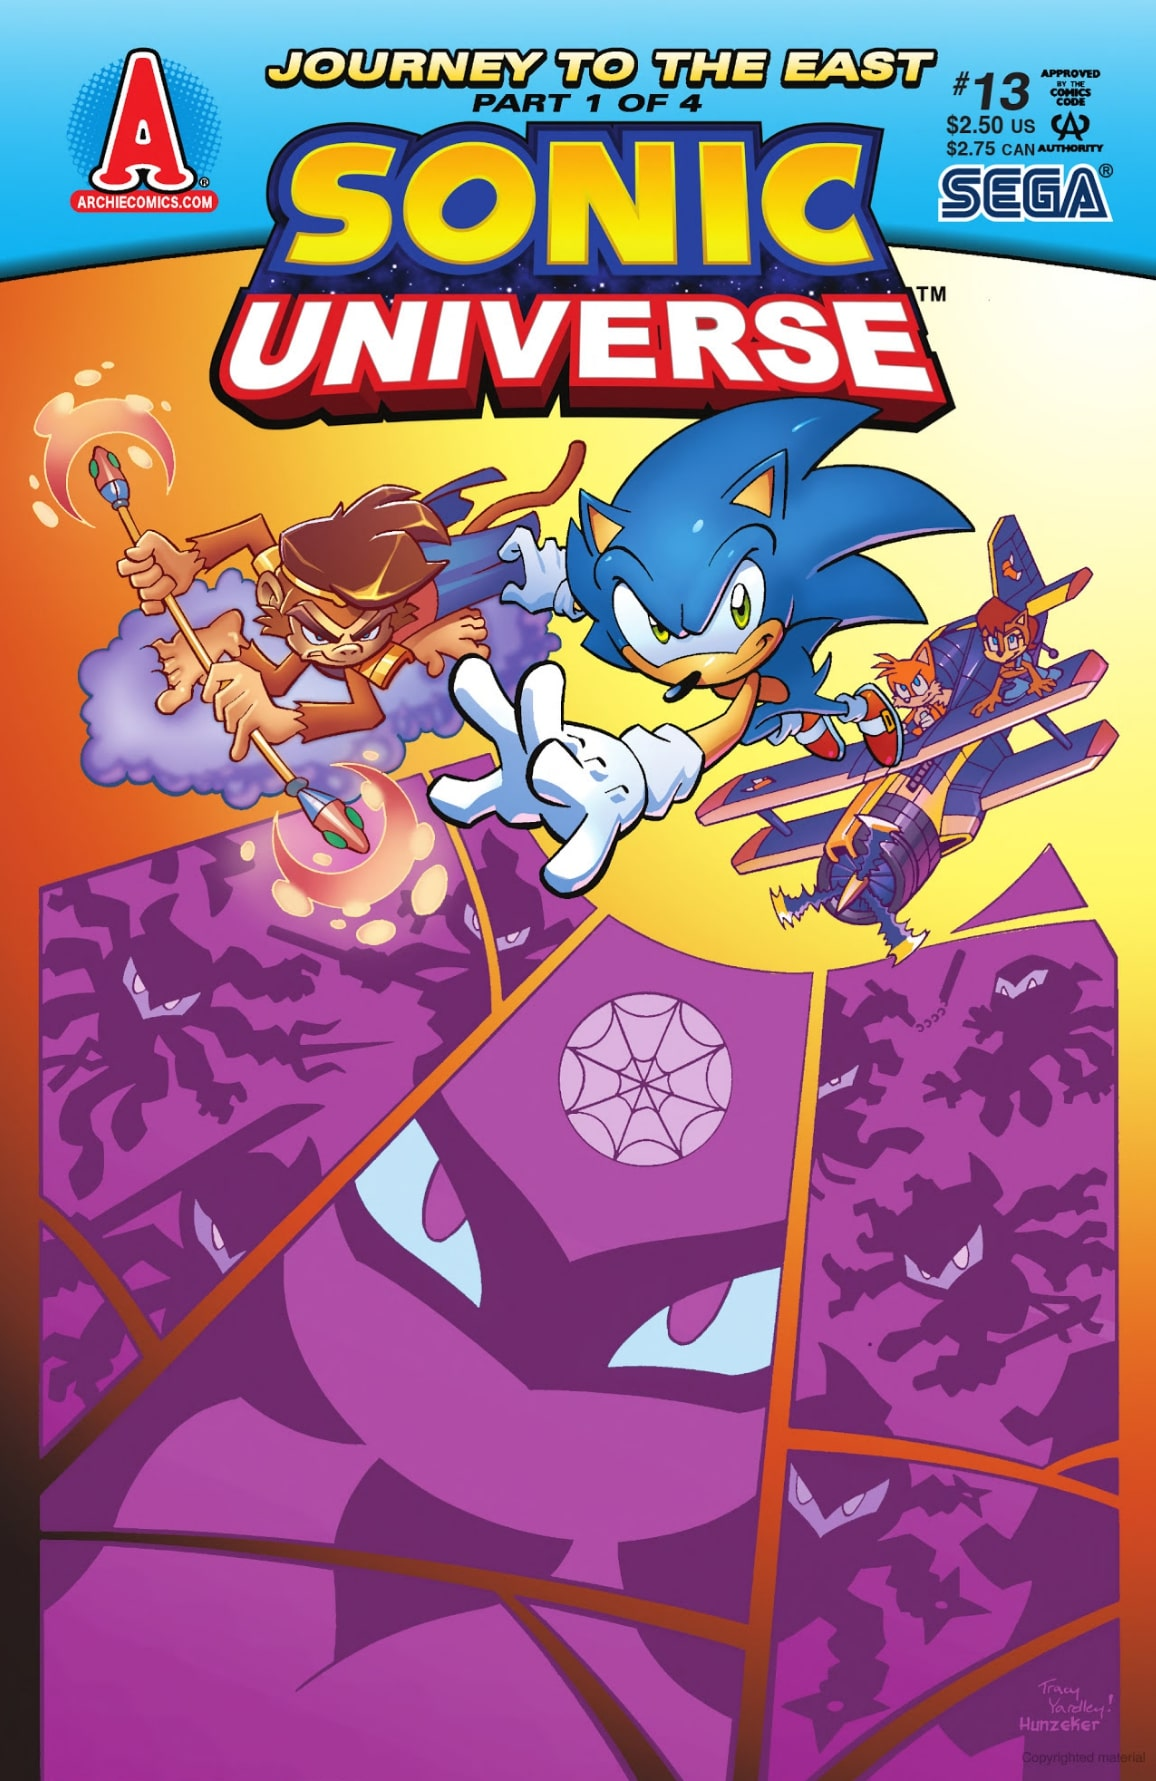 Archie Sonic Universe Issue 13 Sonic News Network Fandom